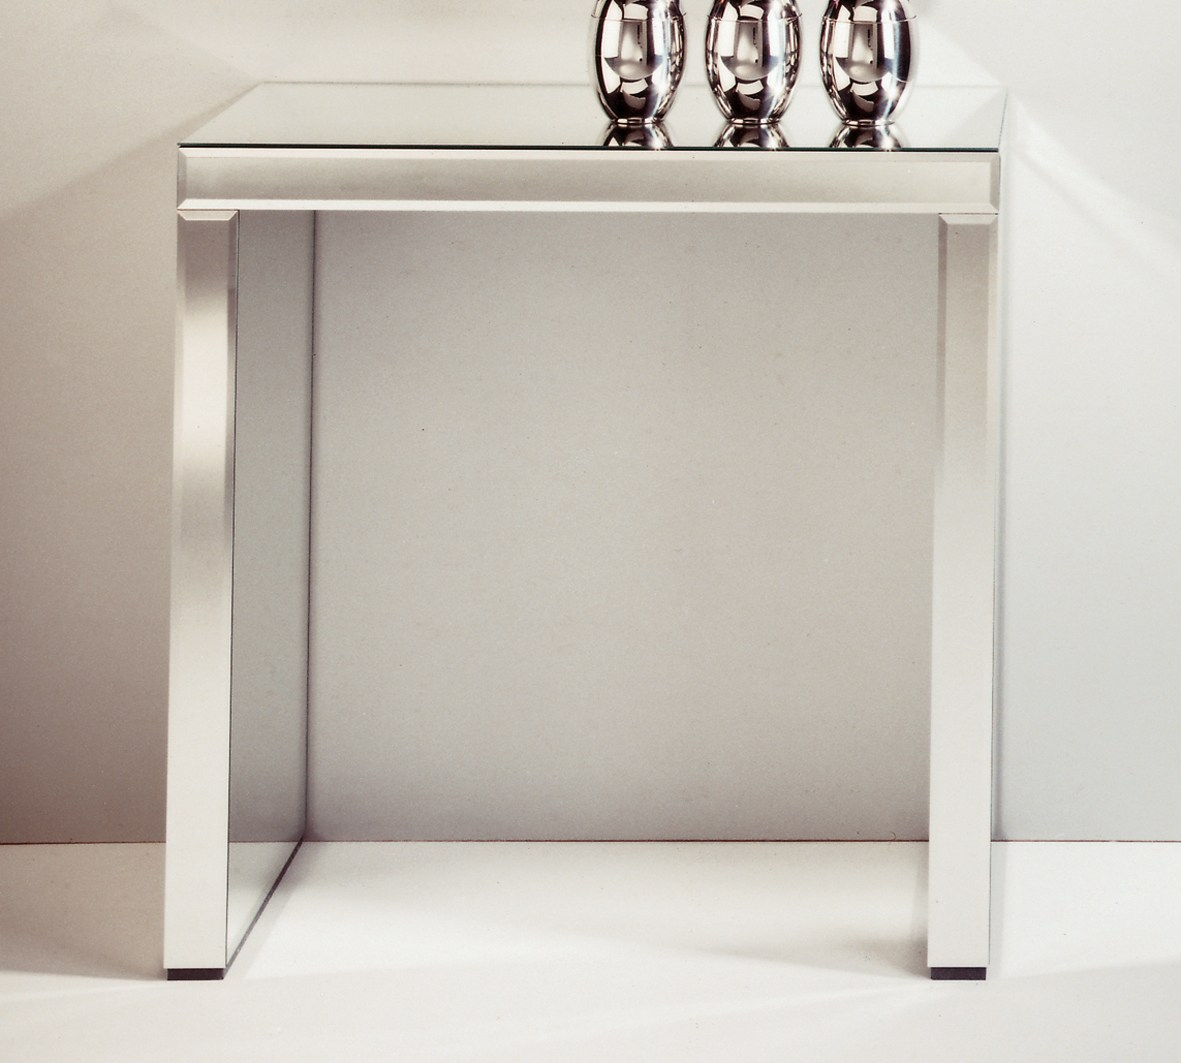 Konsole Spiegelglas Tavolo Console Table By Deknudt Mirrors